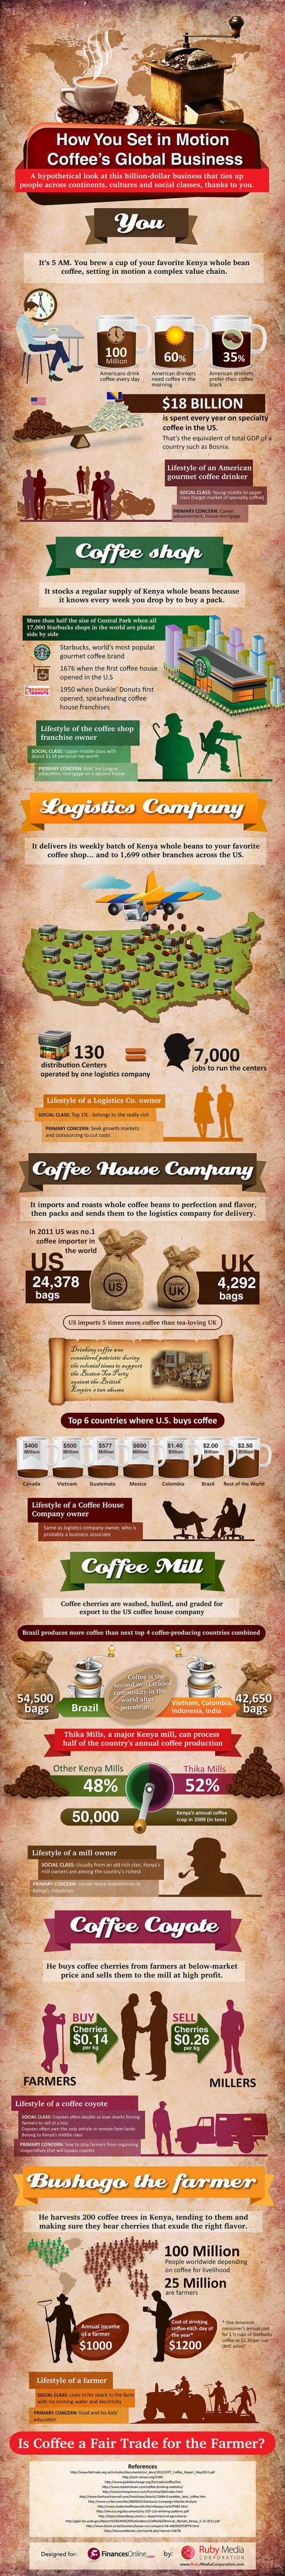 noid-coffee-infographic